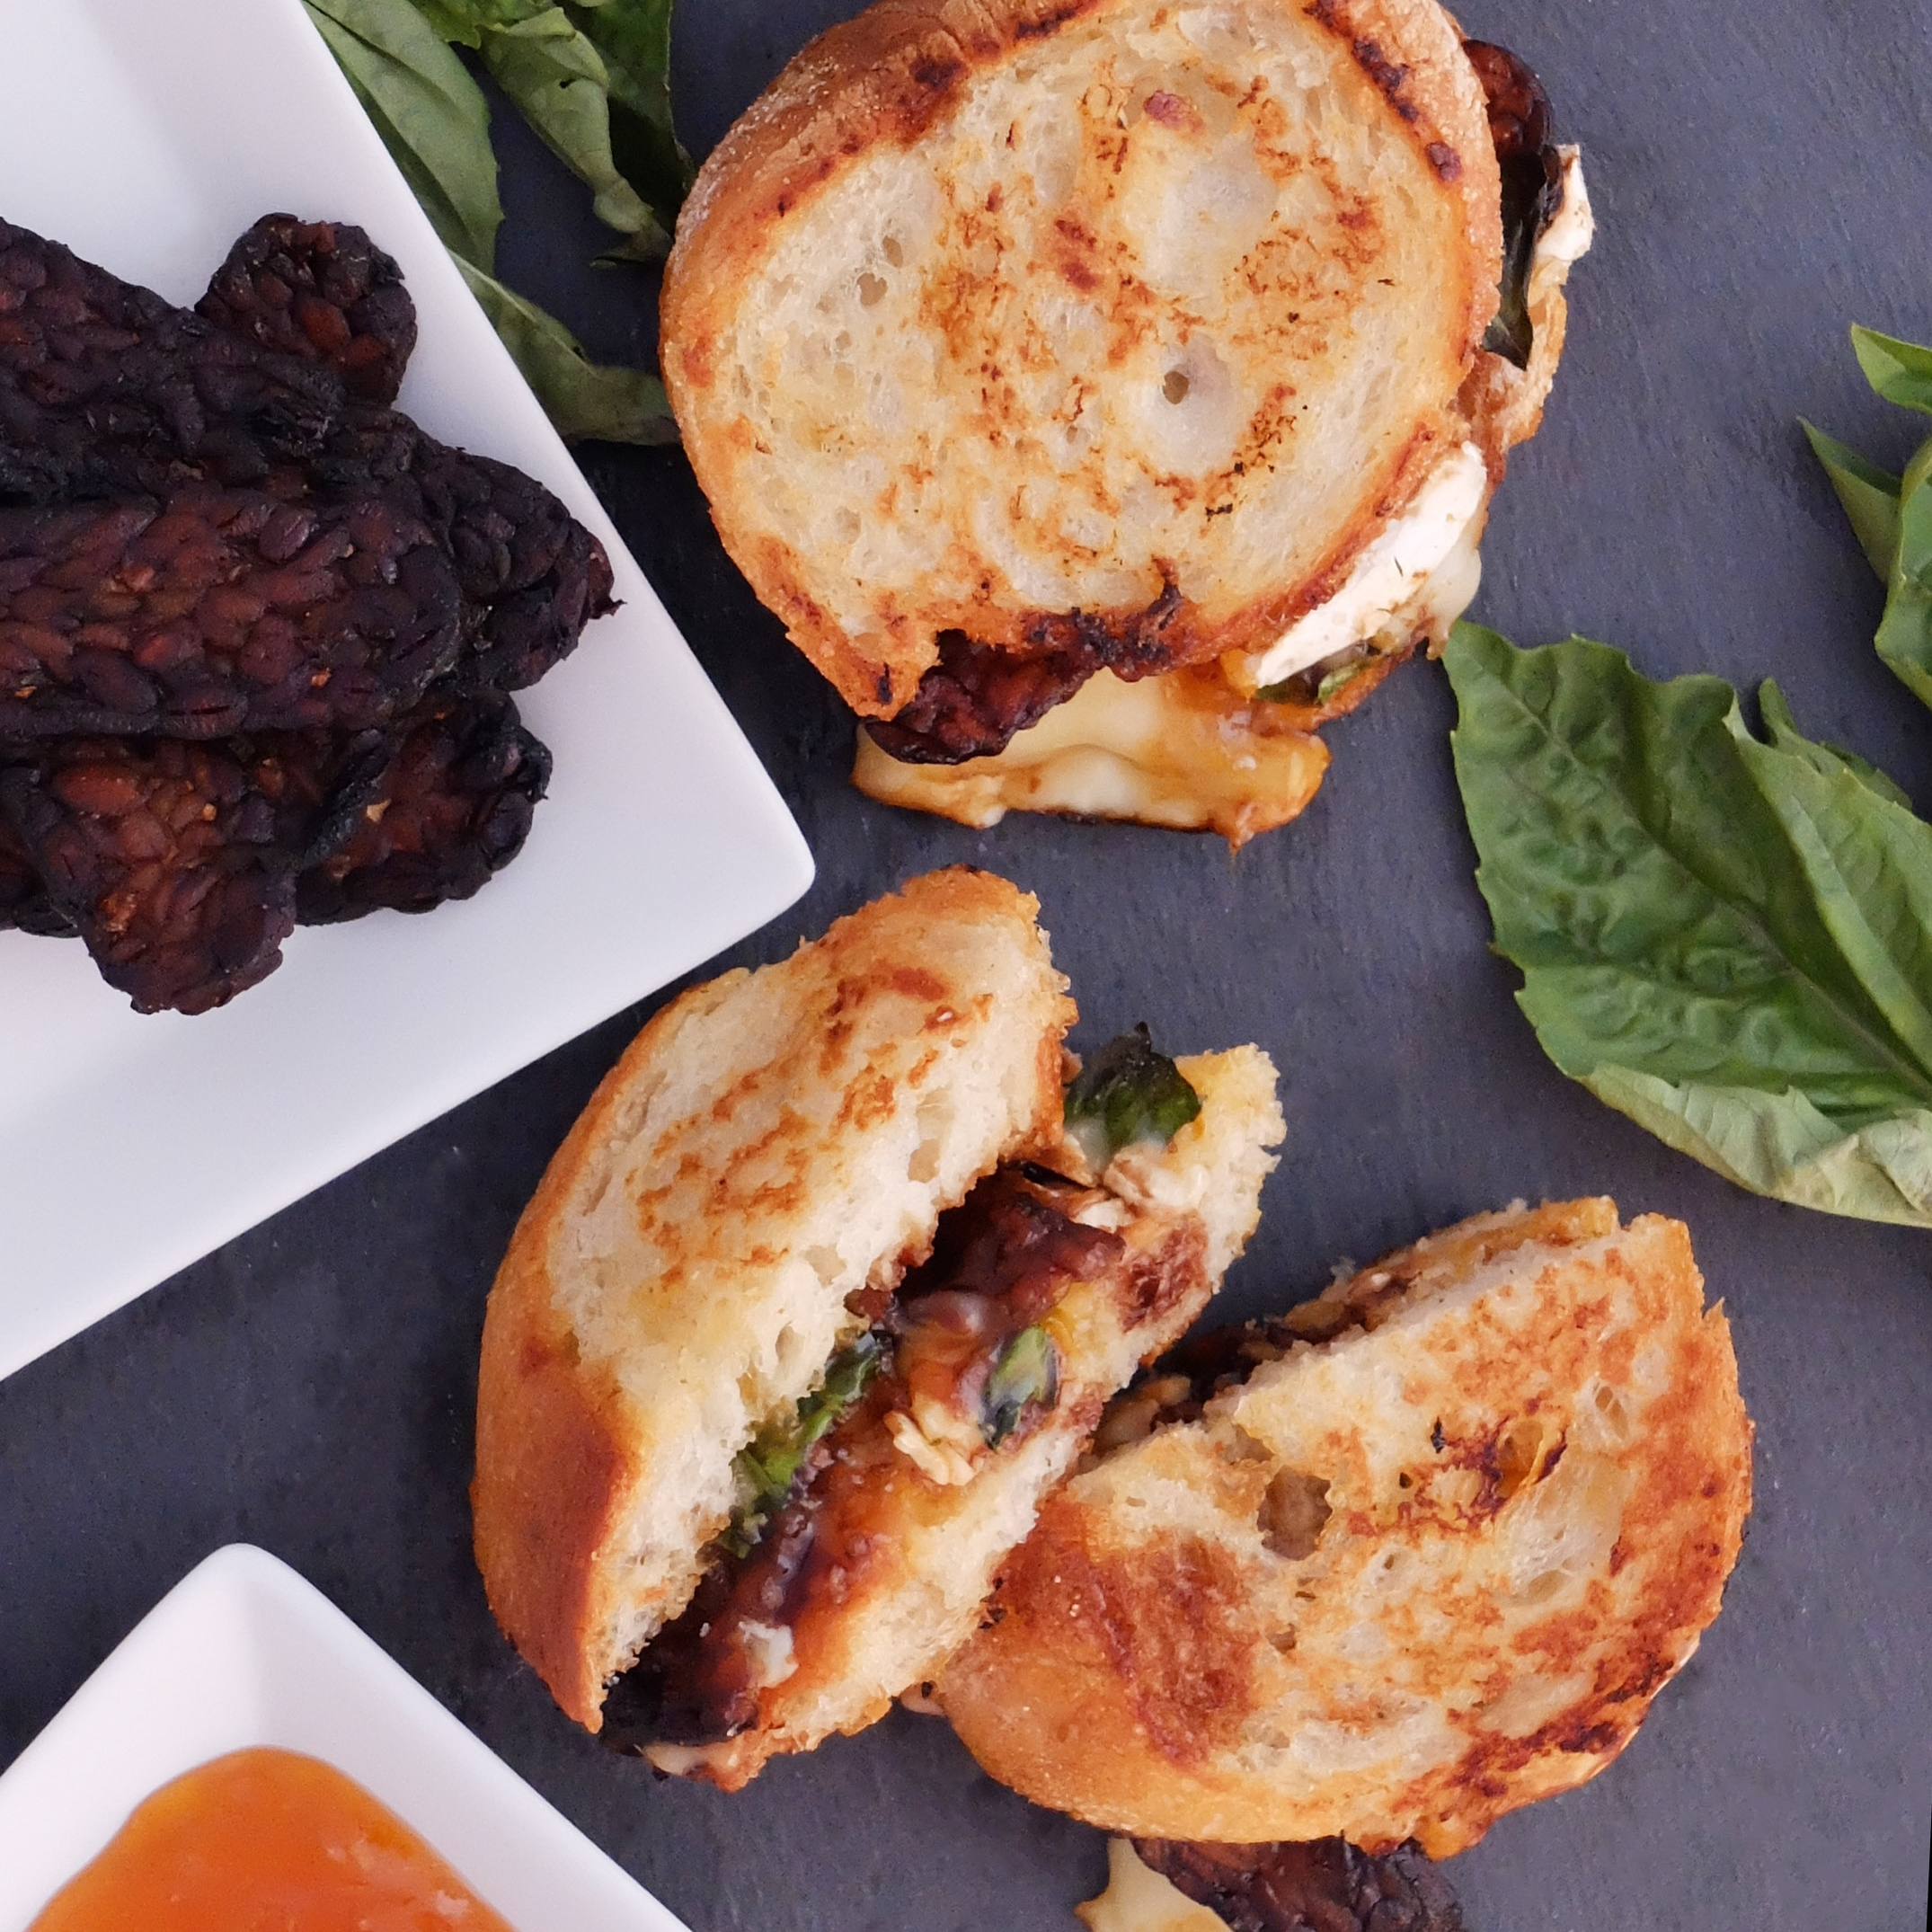 Grilled Cheese with Tempeh Bacon - with Brie, Balsamic, and Apricot